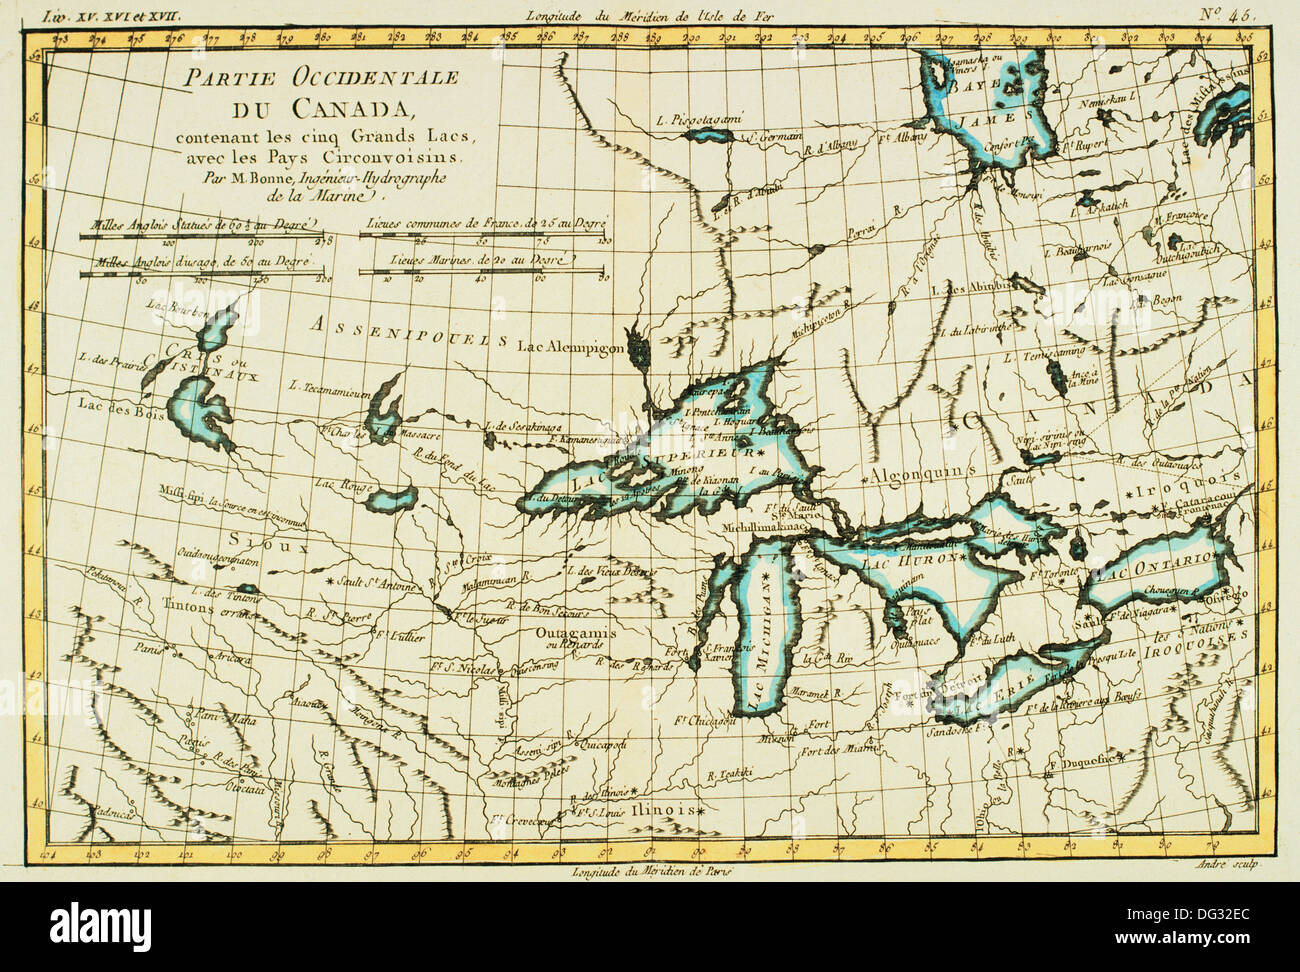 Canada Great Lakes Th Century Map Stock Photo Royalty Free - Map of canada and lakes